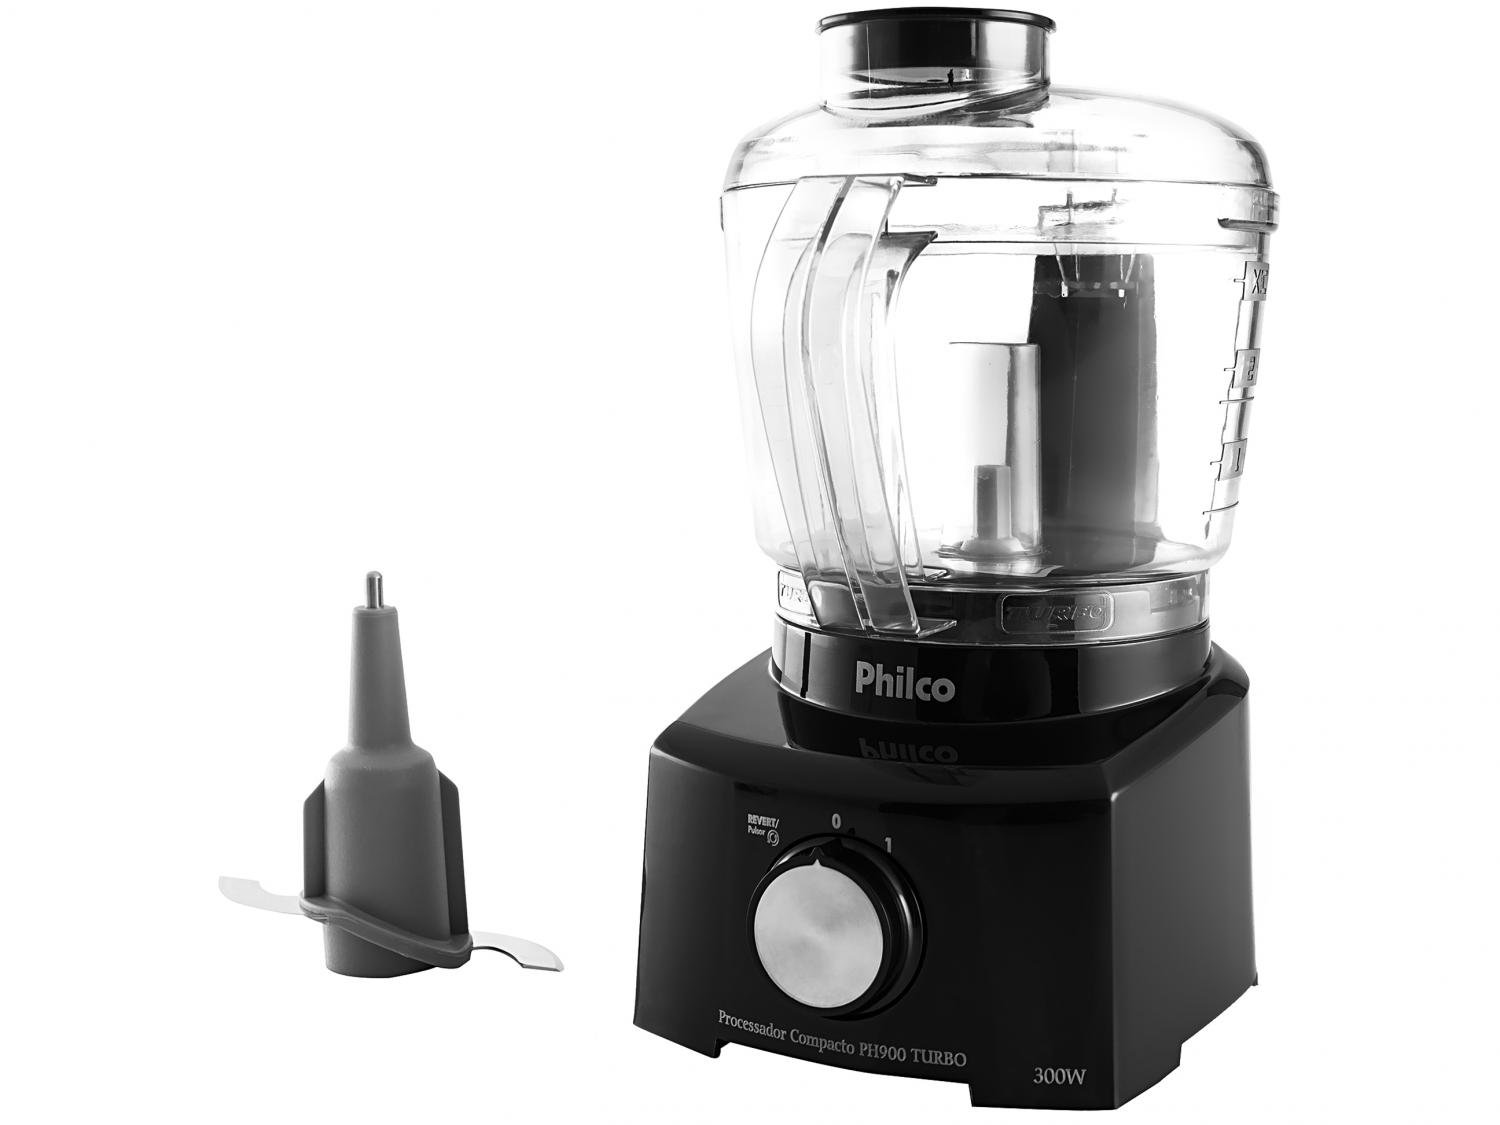 Mini Processador de Alimentos Philco PH900P Turbo 250W – Preto - 220V